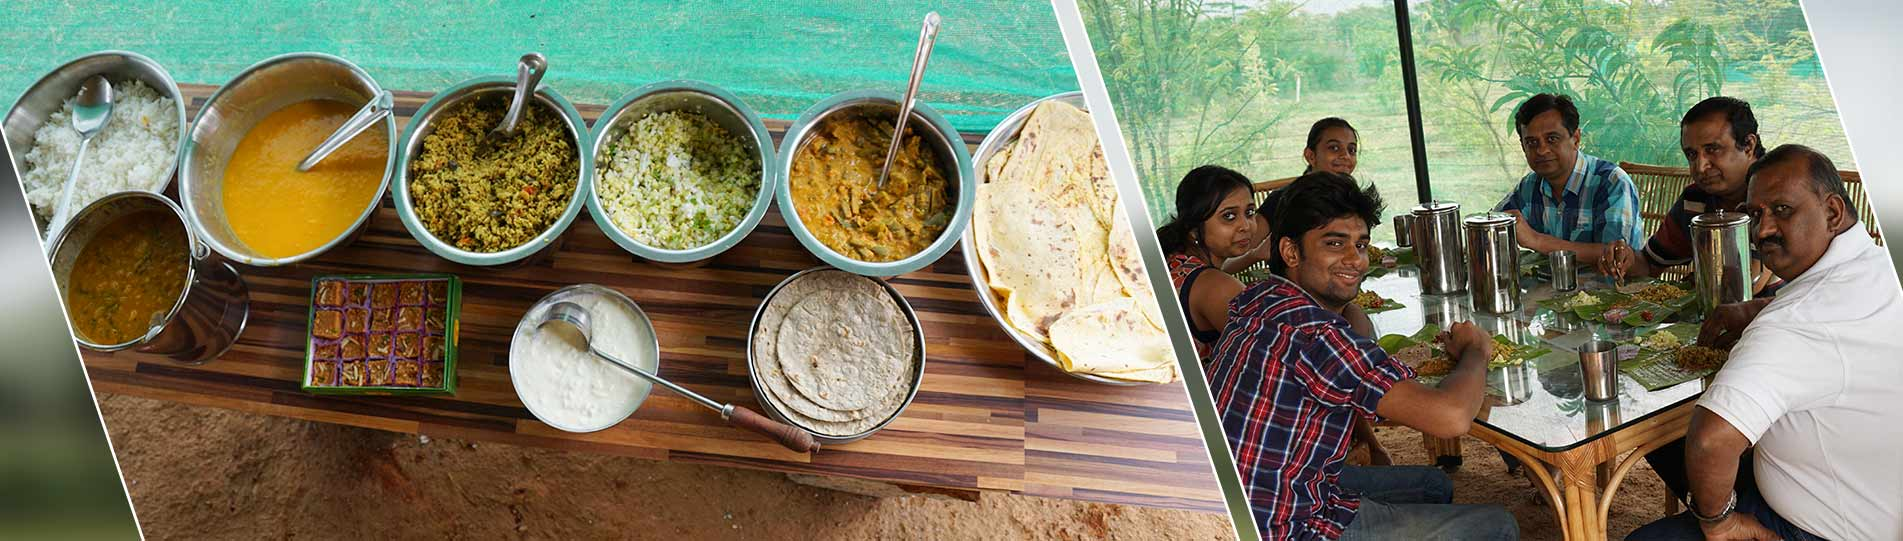 Traditional mysore food served at ChukkiMane